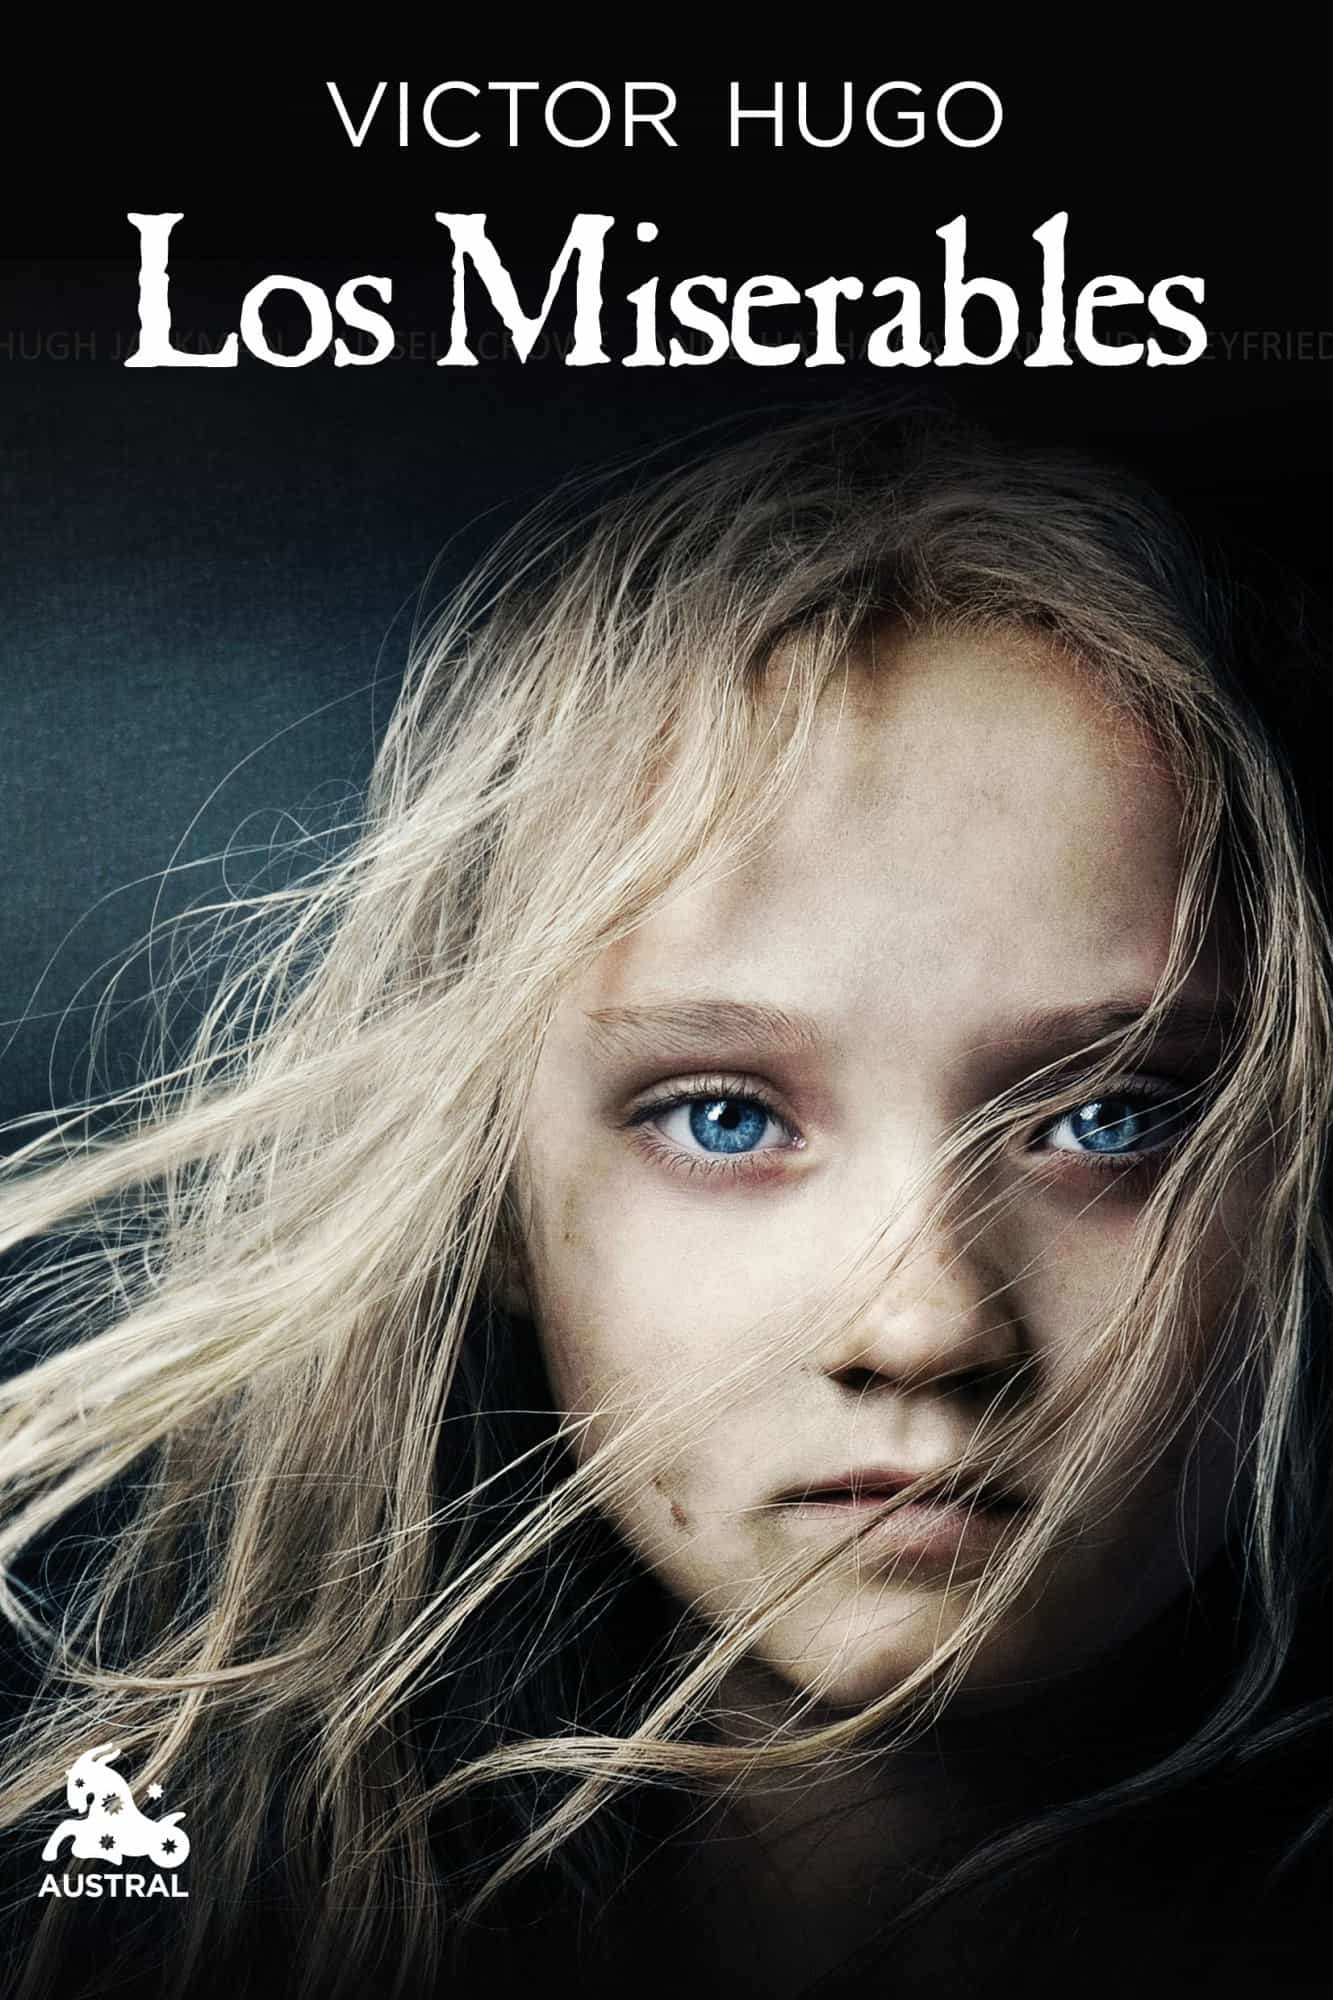 VICTOR HUGO Los miserables